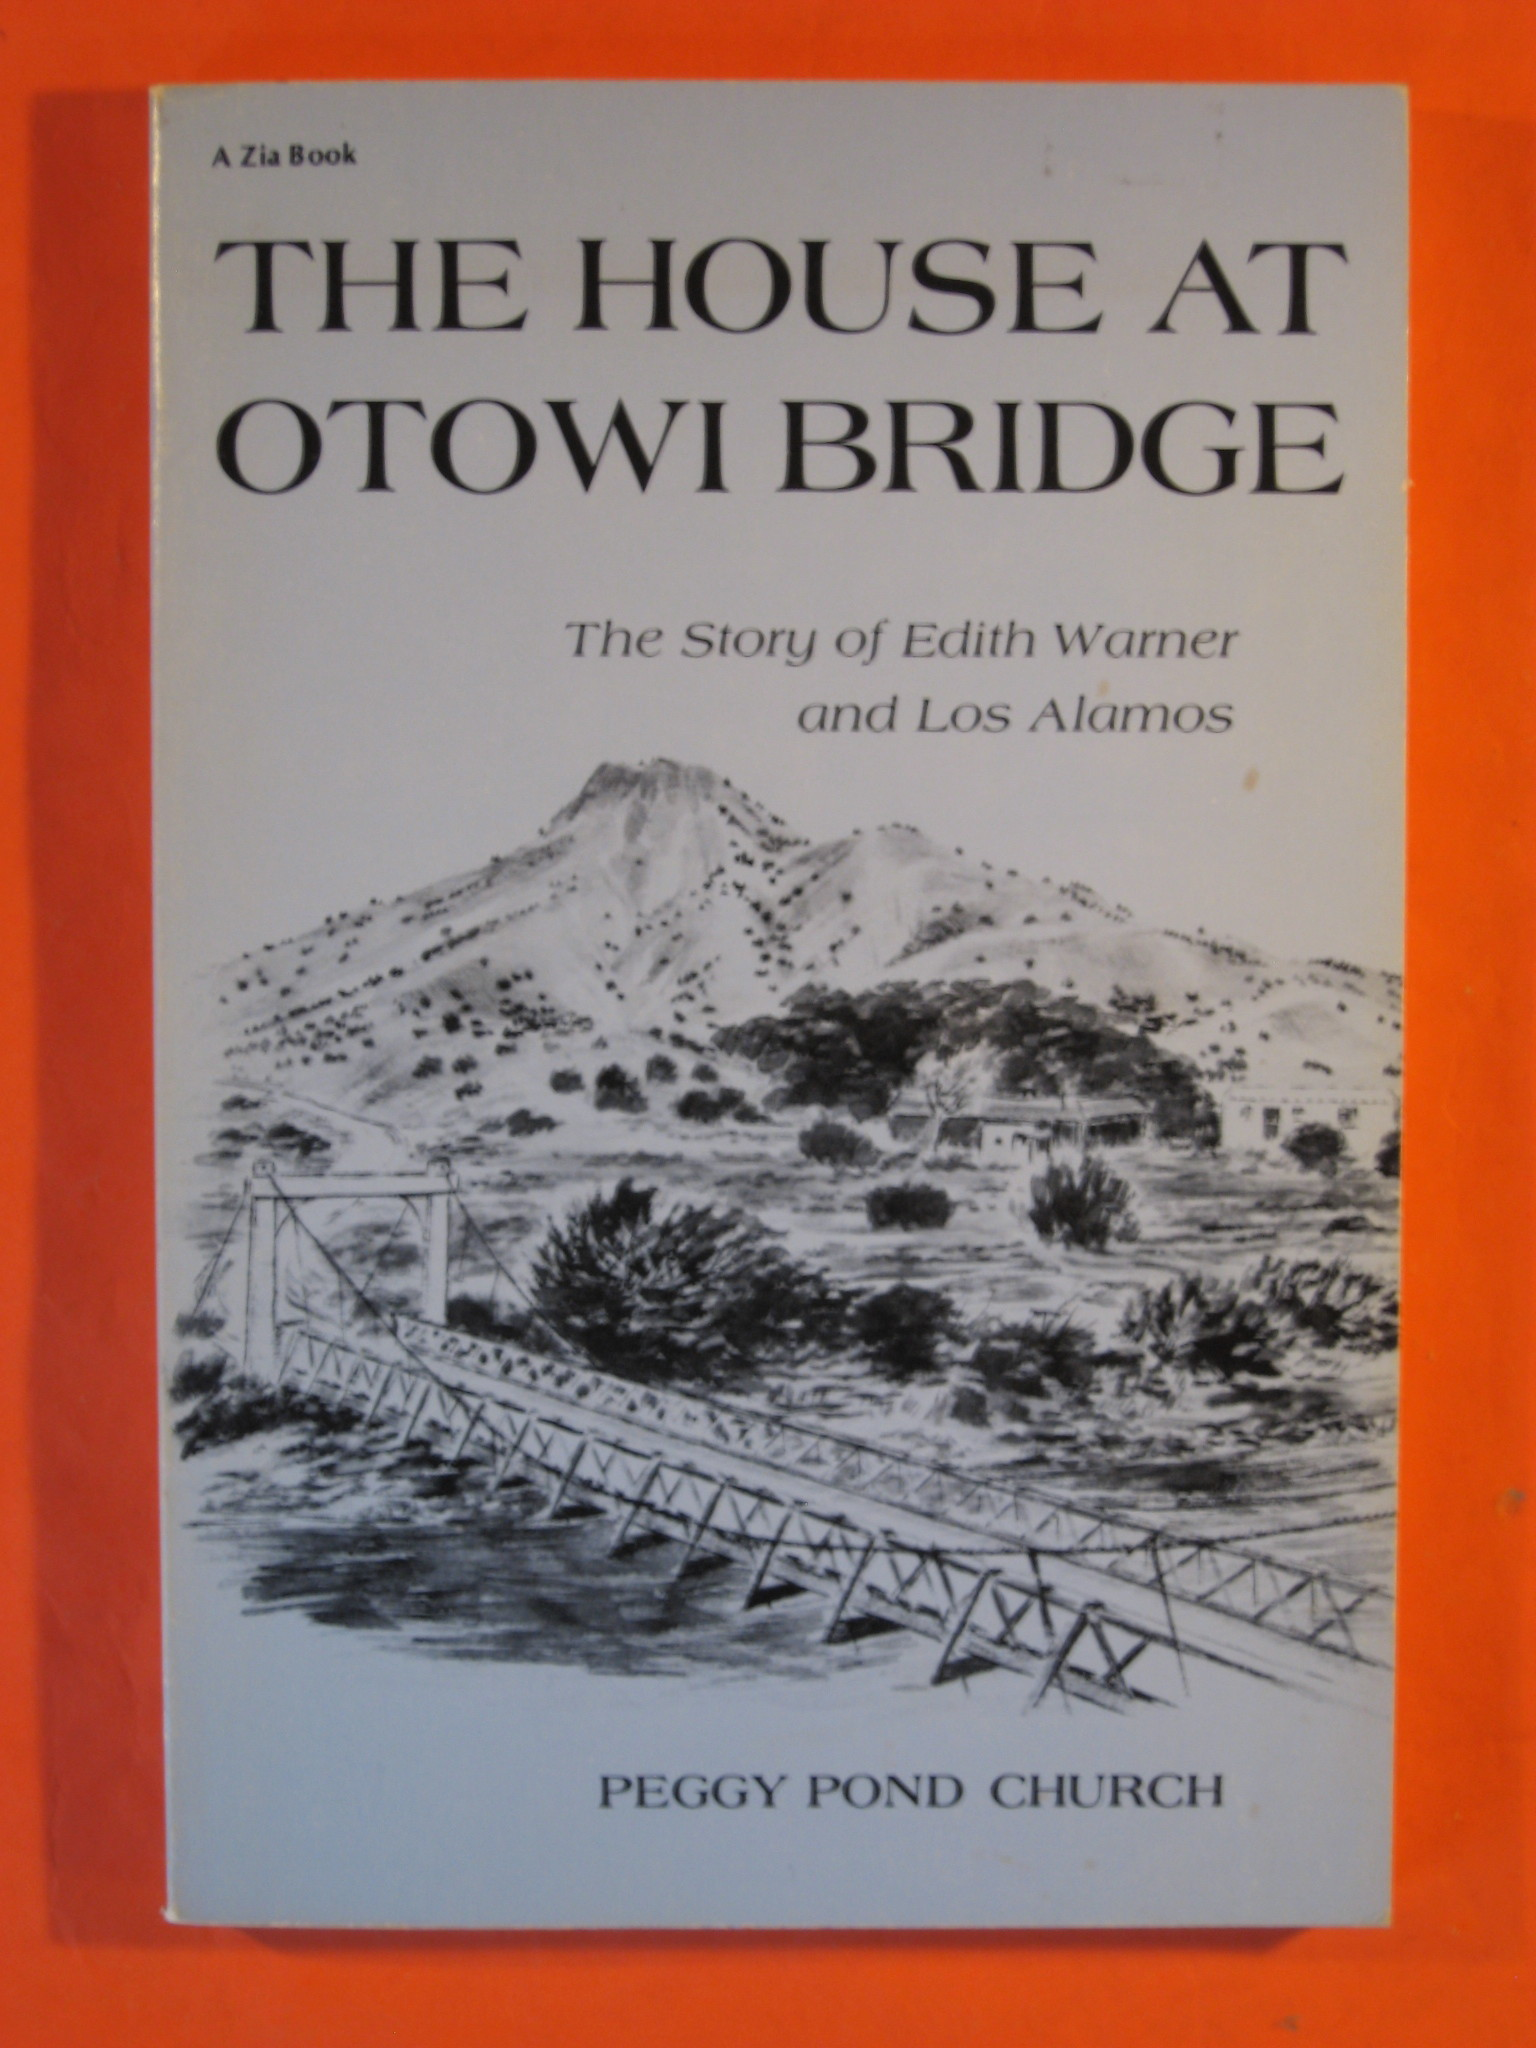 The House at Otowi Bridge : The Story of Edith Warner and Los Alamos (Zia Bks.), Church, Peggy Pond